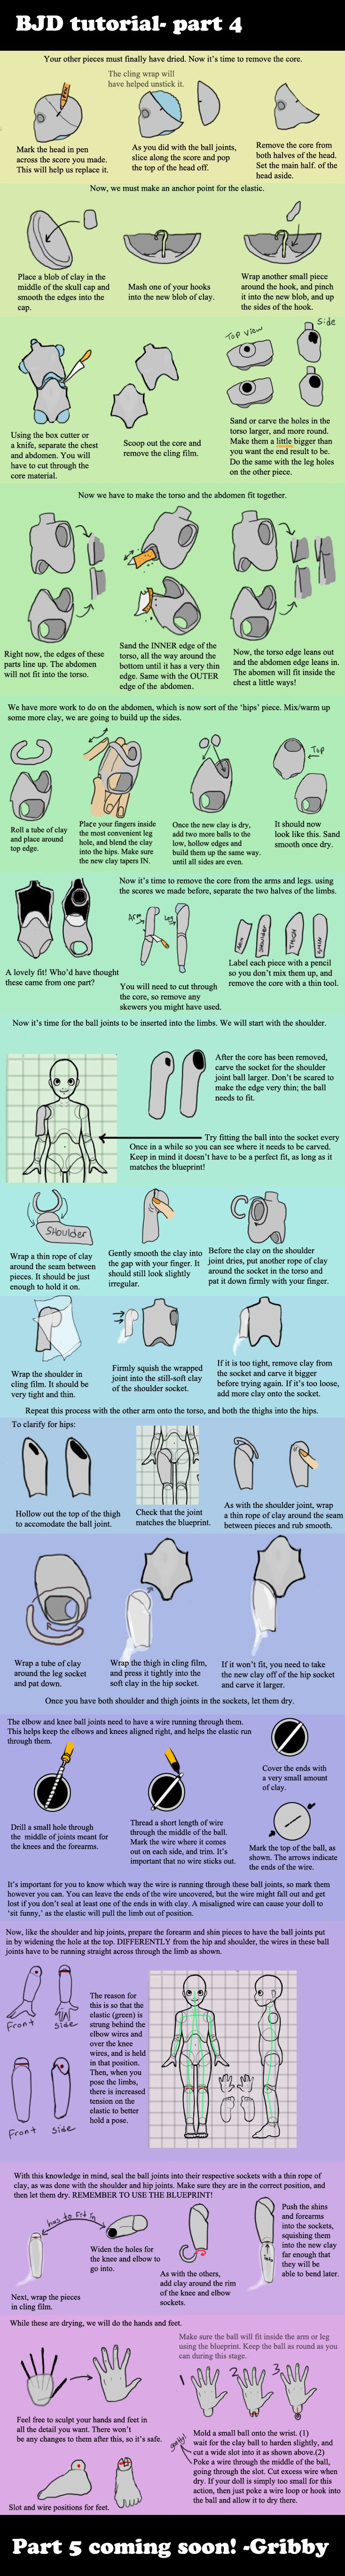 Ball jointed doll tutorial part 4 by *Deskleaves on deviantART